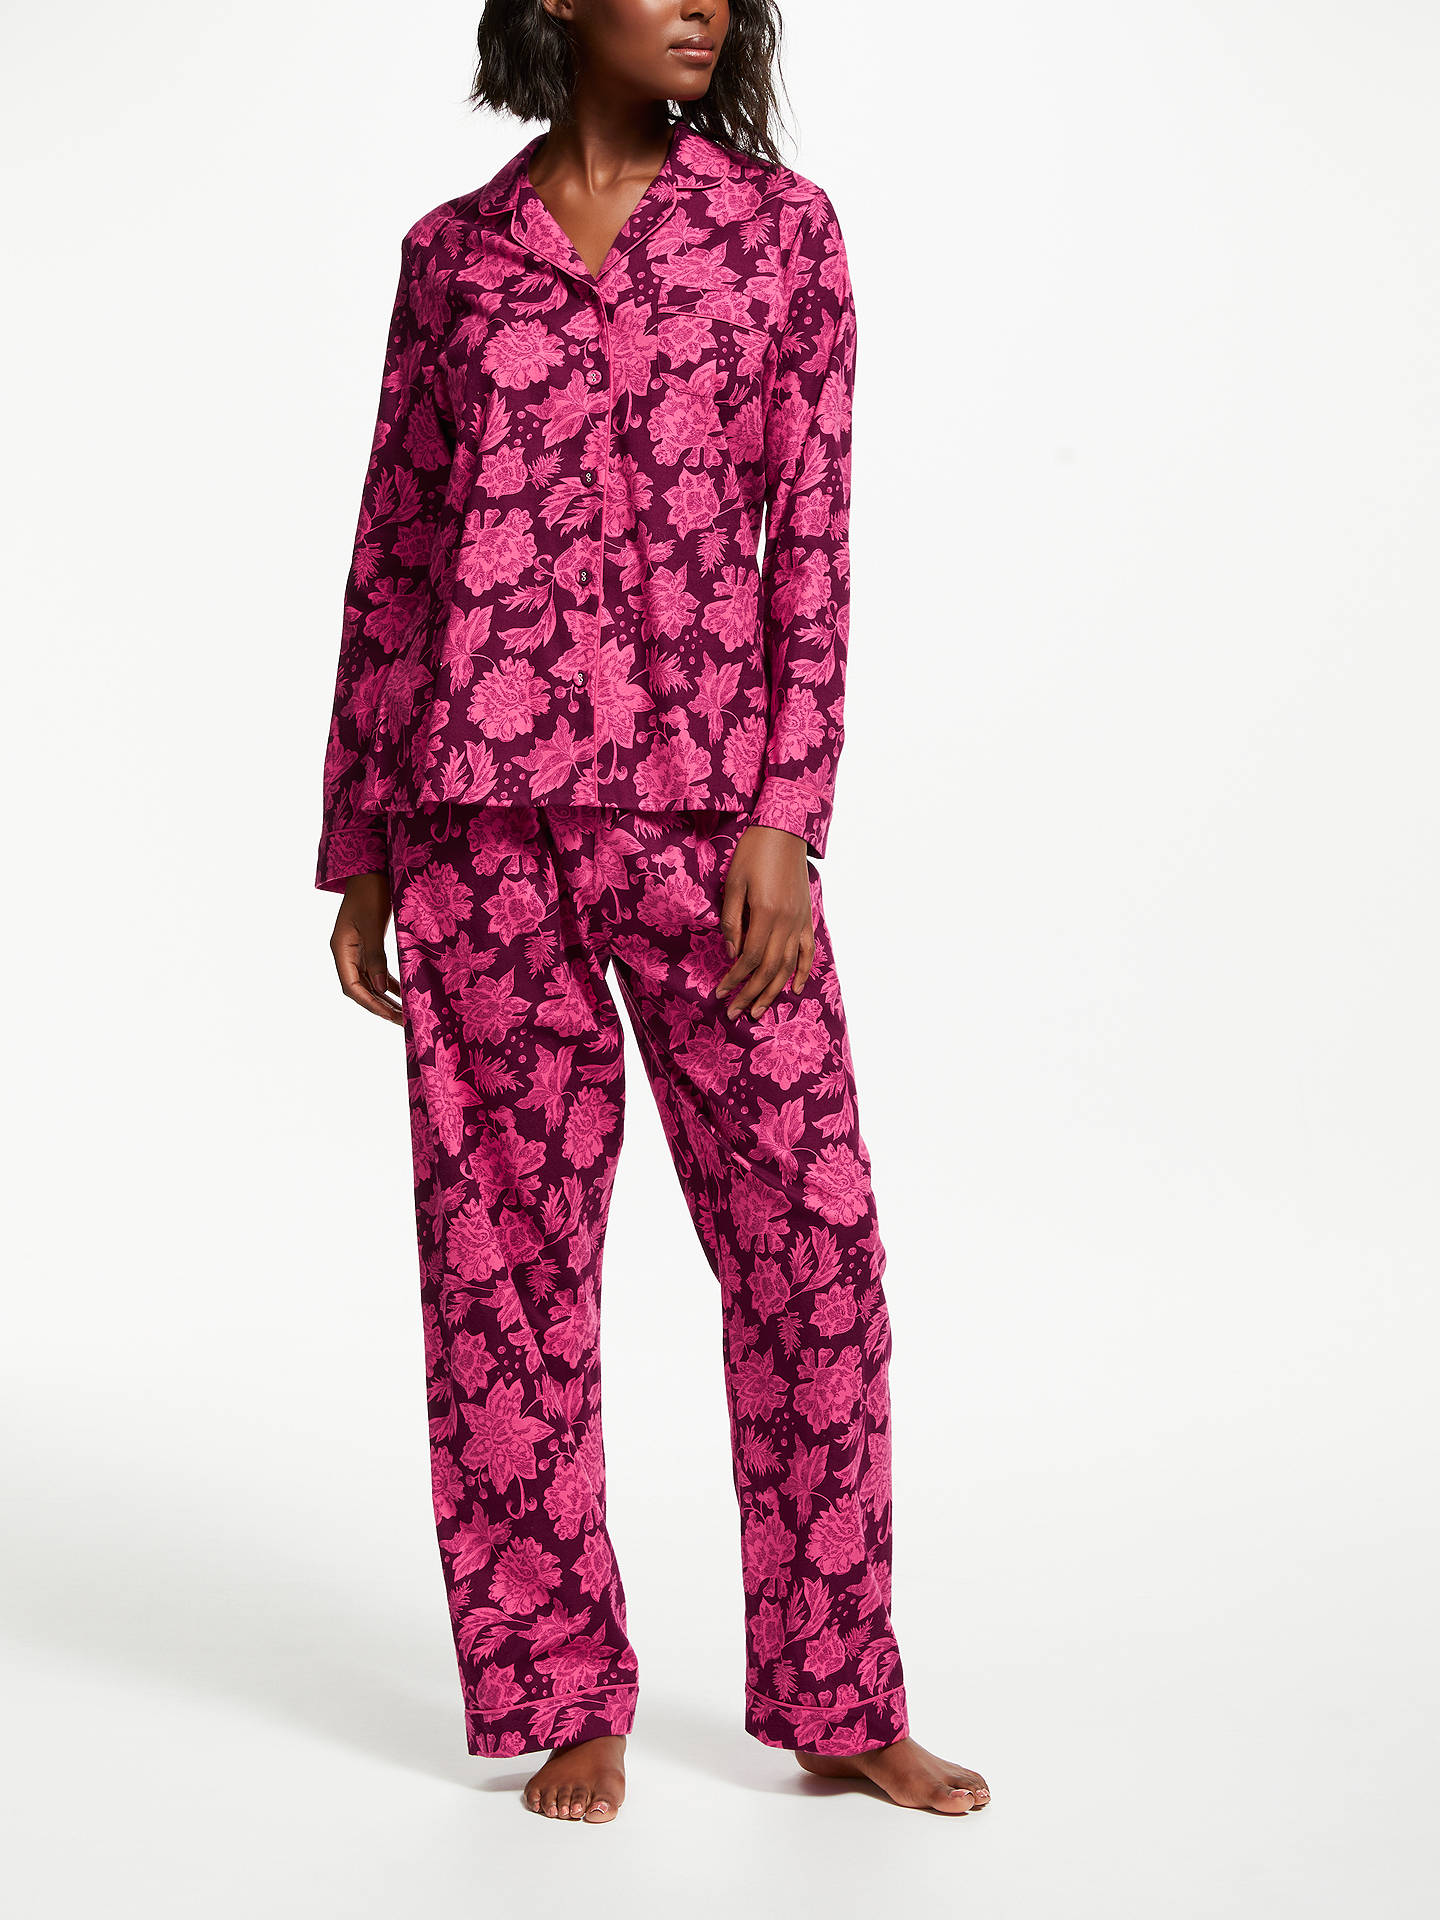 BuyJohn Lewis & Partners Gemma Floral Print Cotton Pyjama Set, Pink/Multi, 8 Online at johnlewis.com